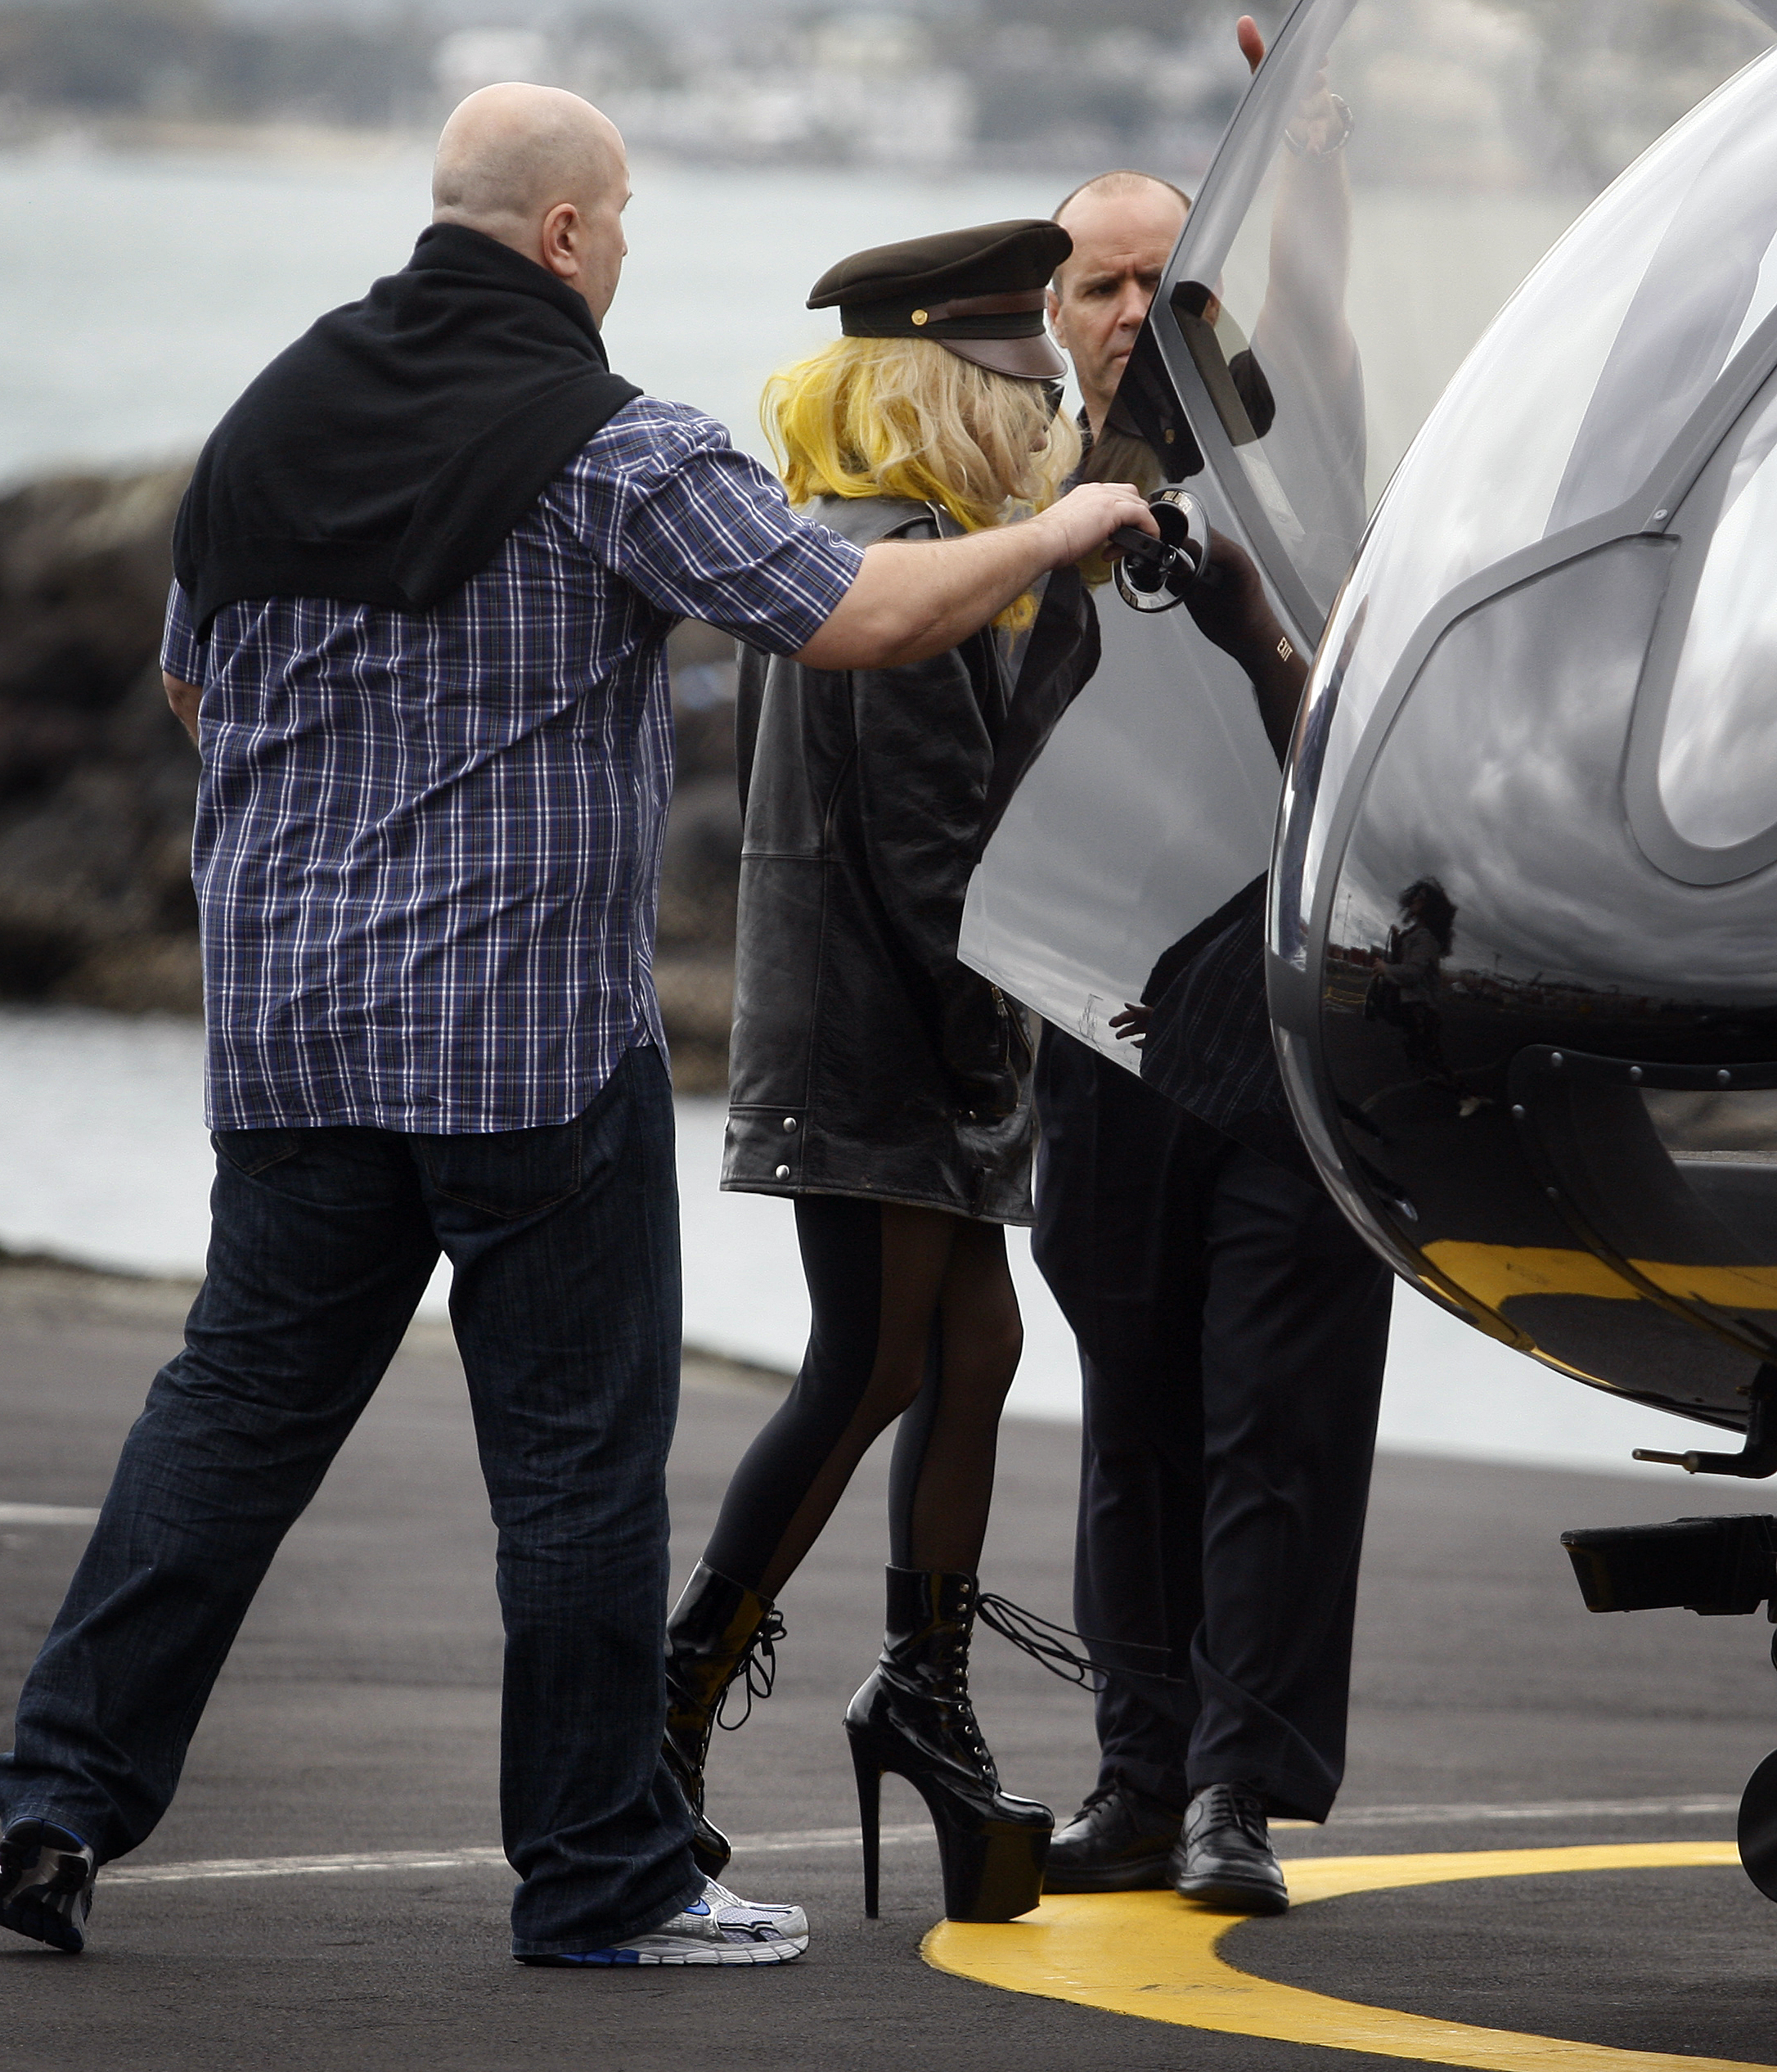 File:3-15-10 At Heliport in Auckland 001.jpg